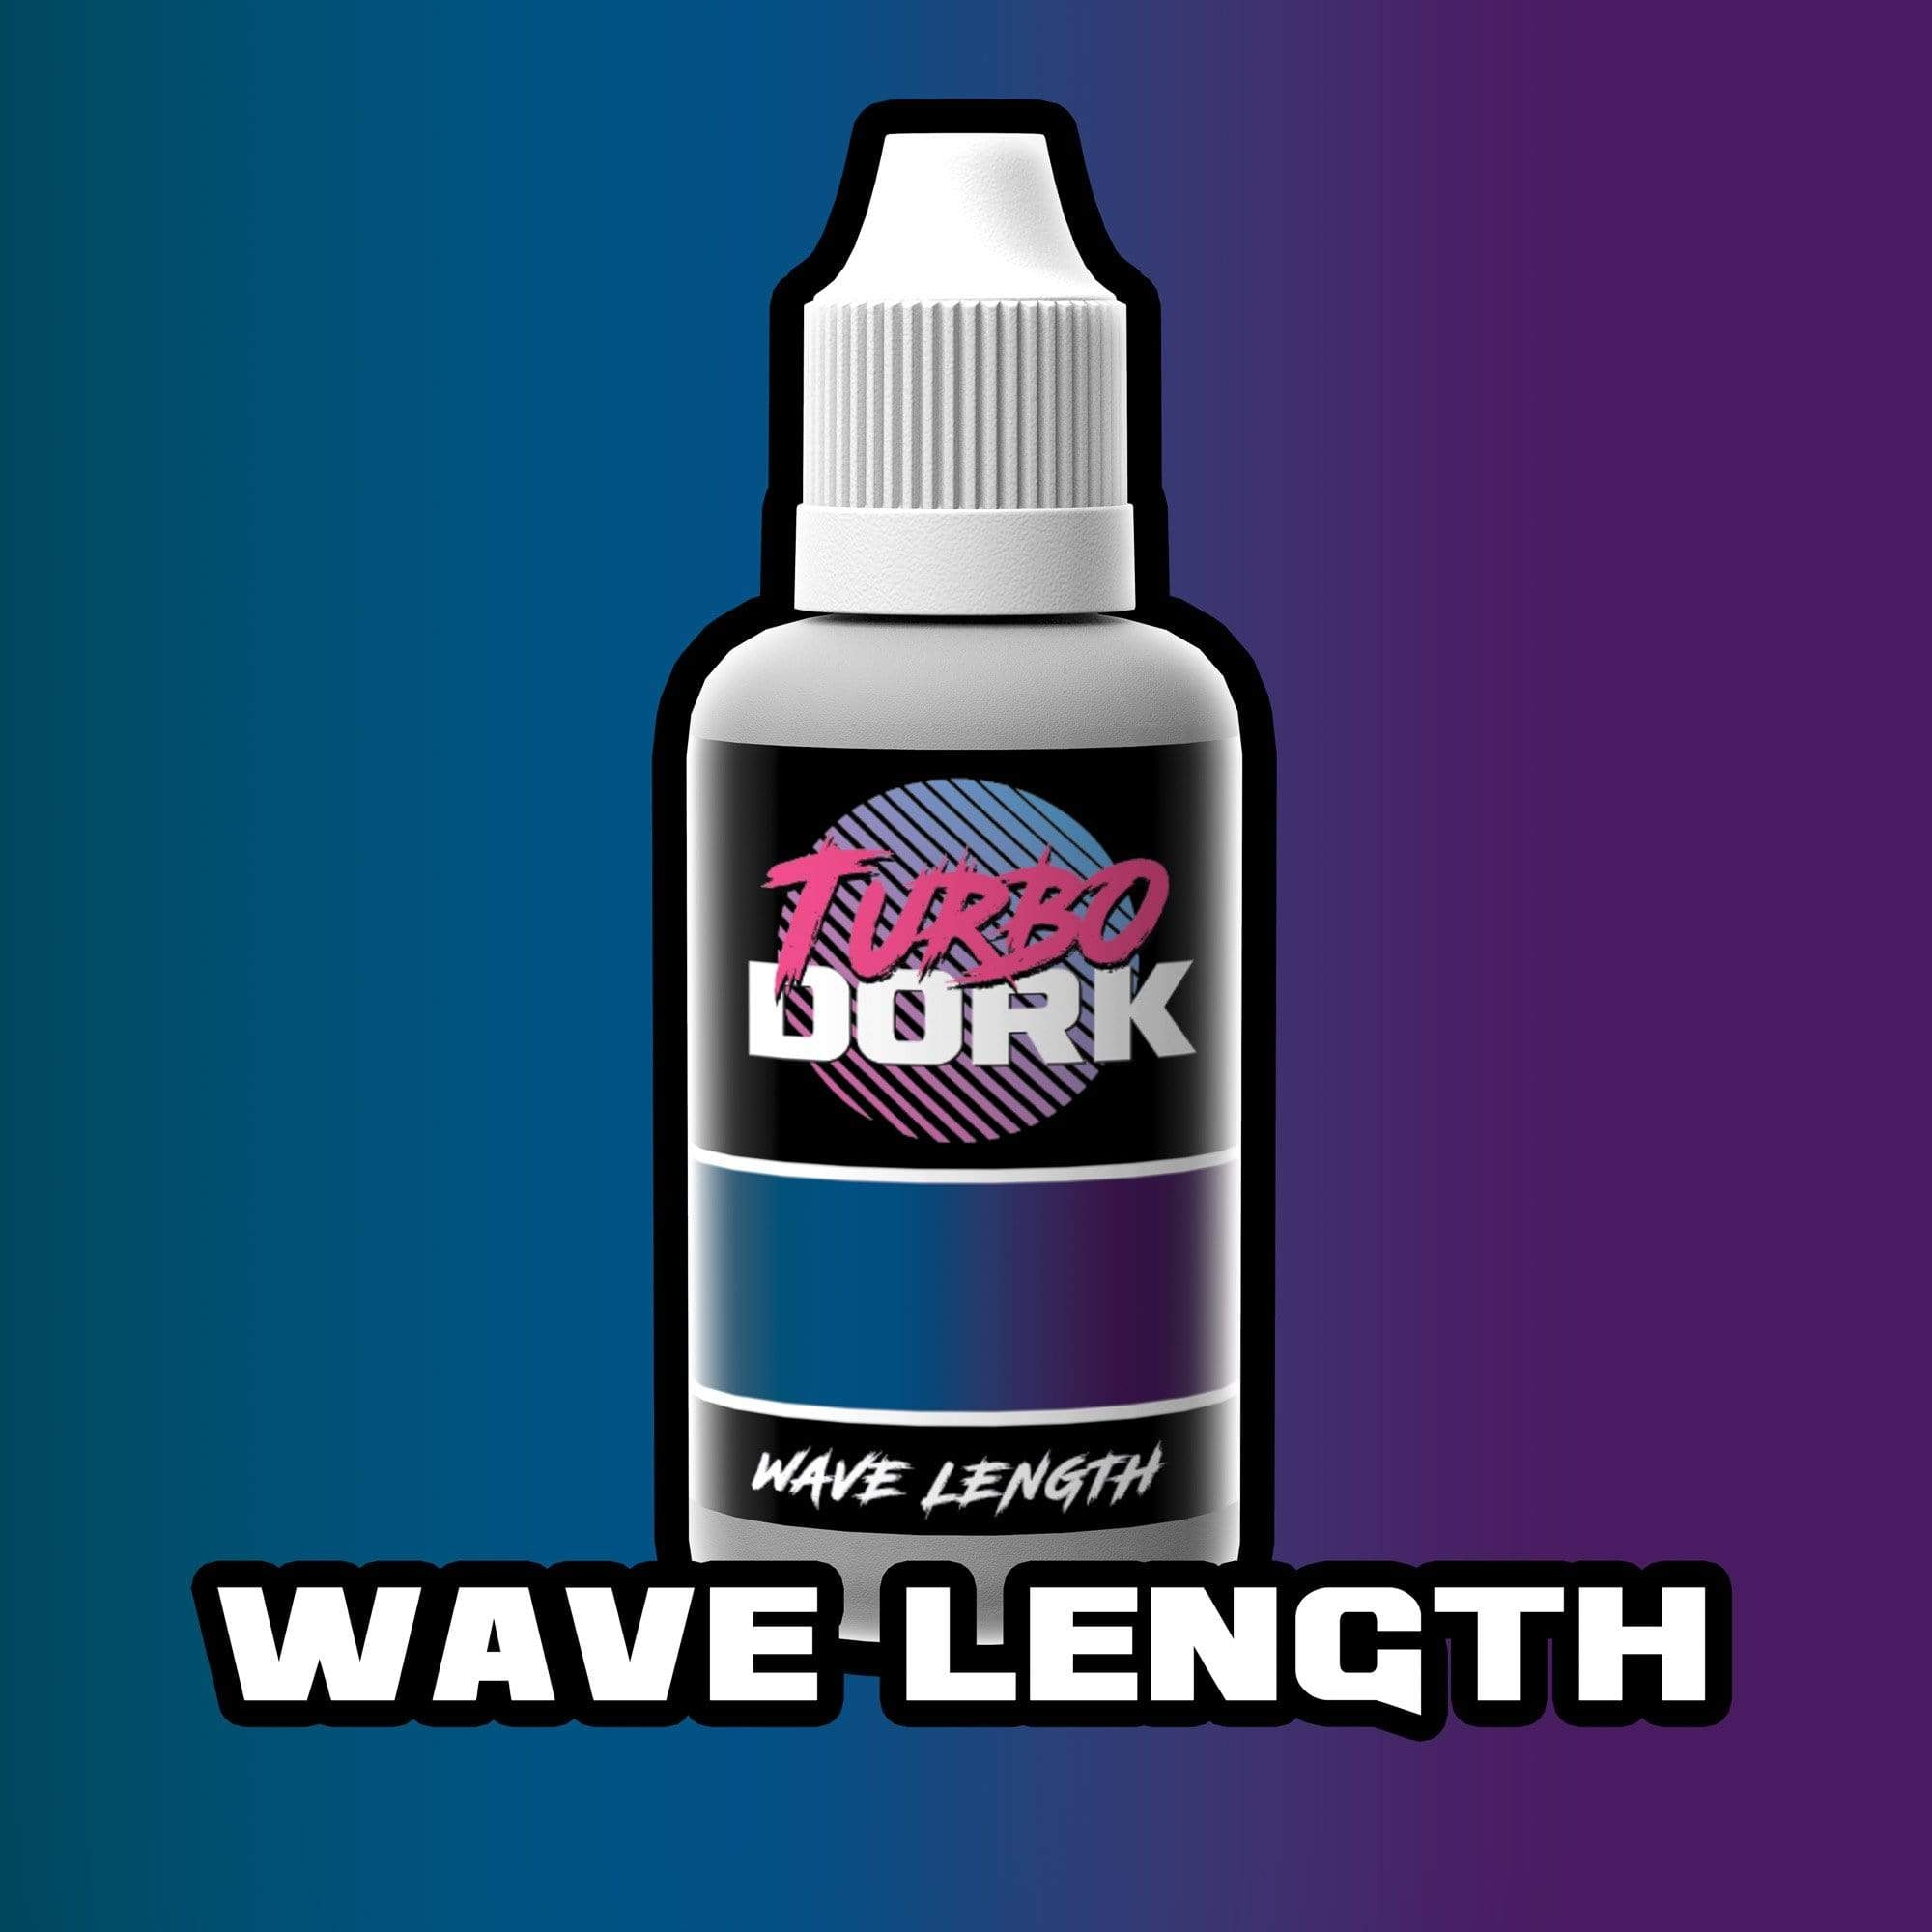 Turbo Dork Colorshift 20ml Bottle Wavelength Colorshift Acrylic Paint